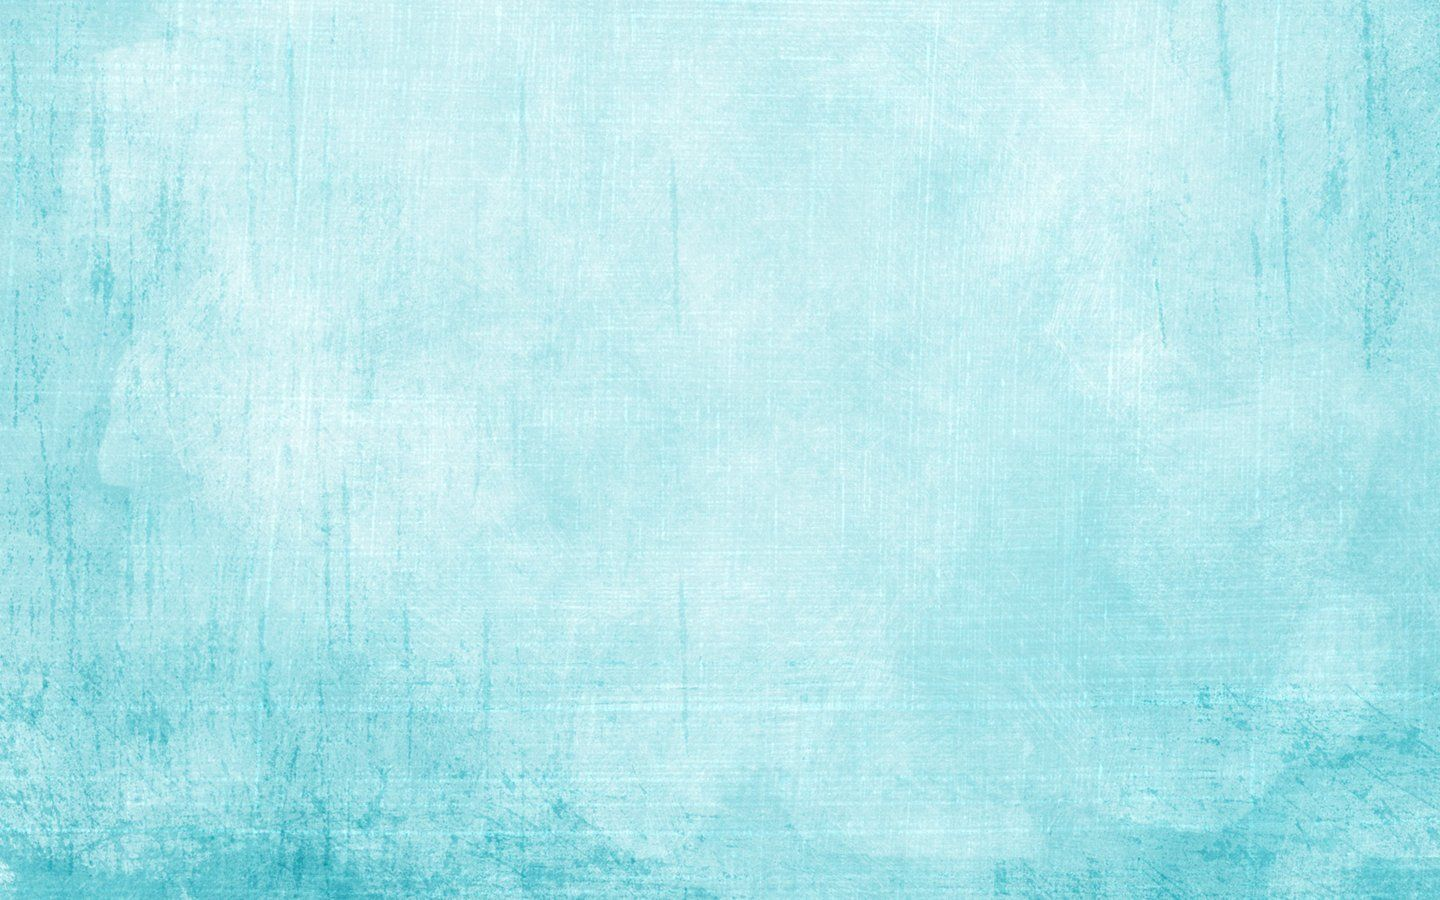 Light Blue Background Aesthetic 330923 Hd Wallpaper Backgrounds Download